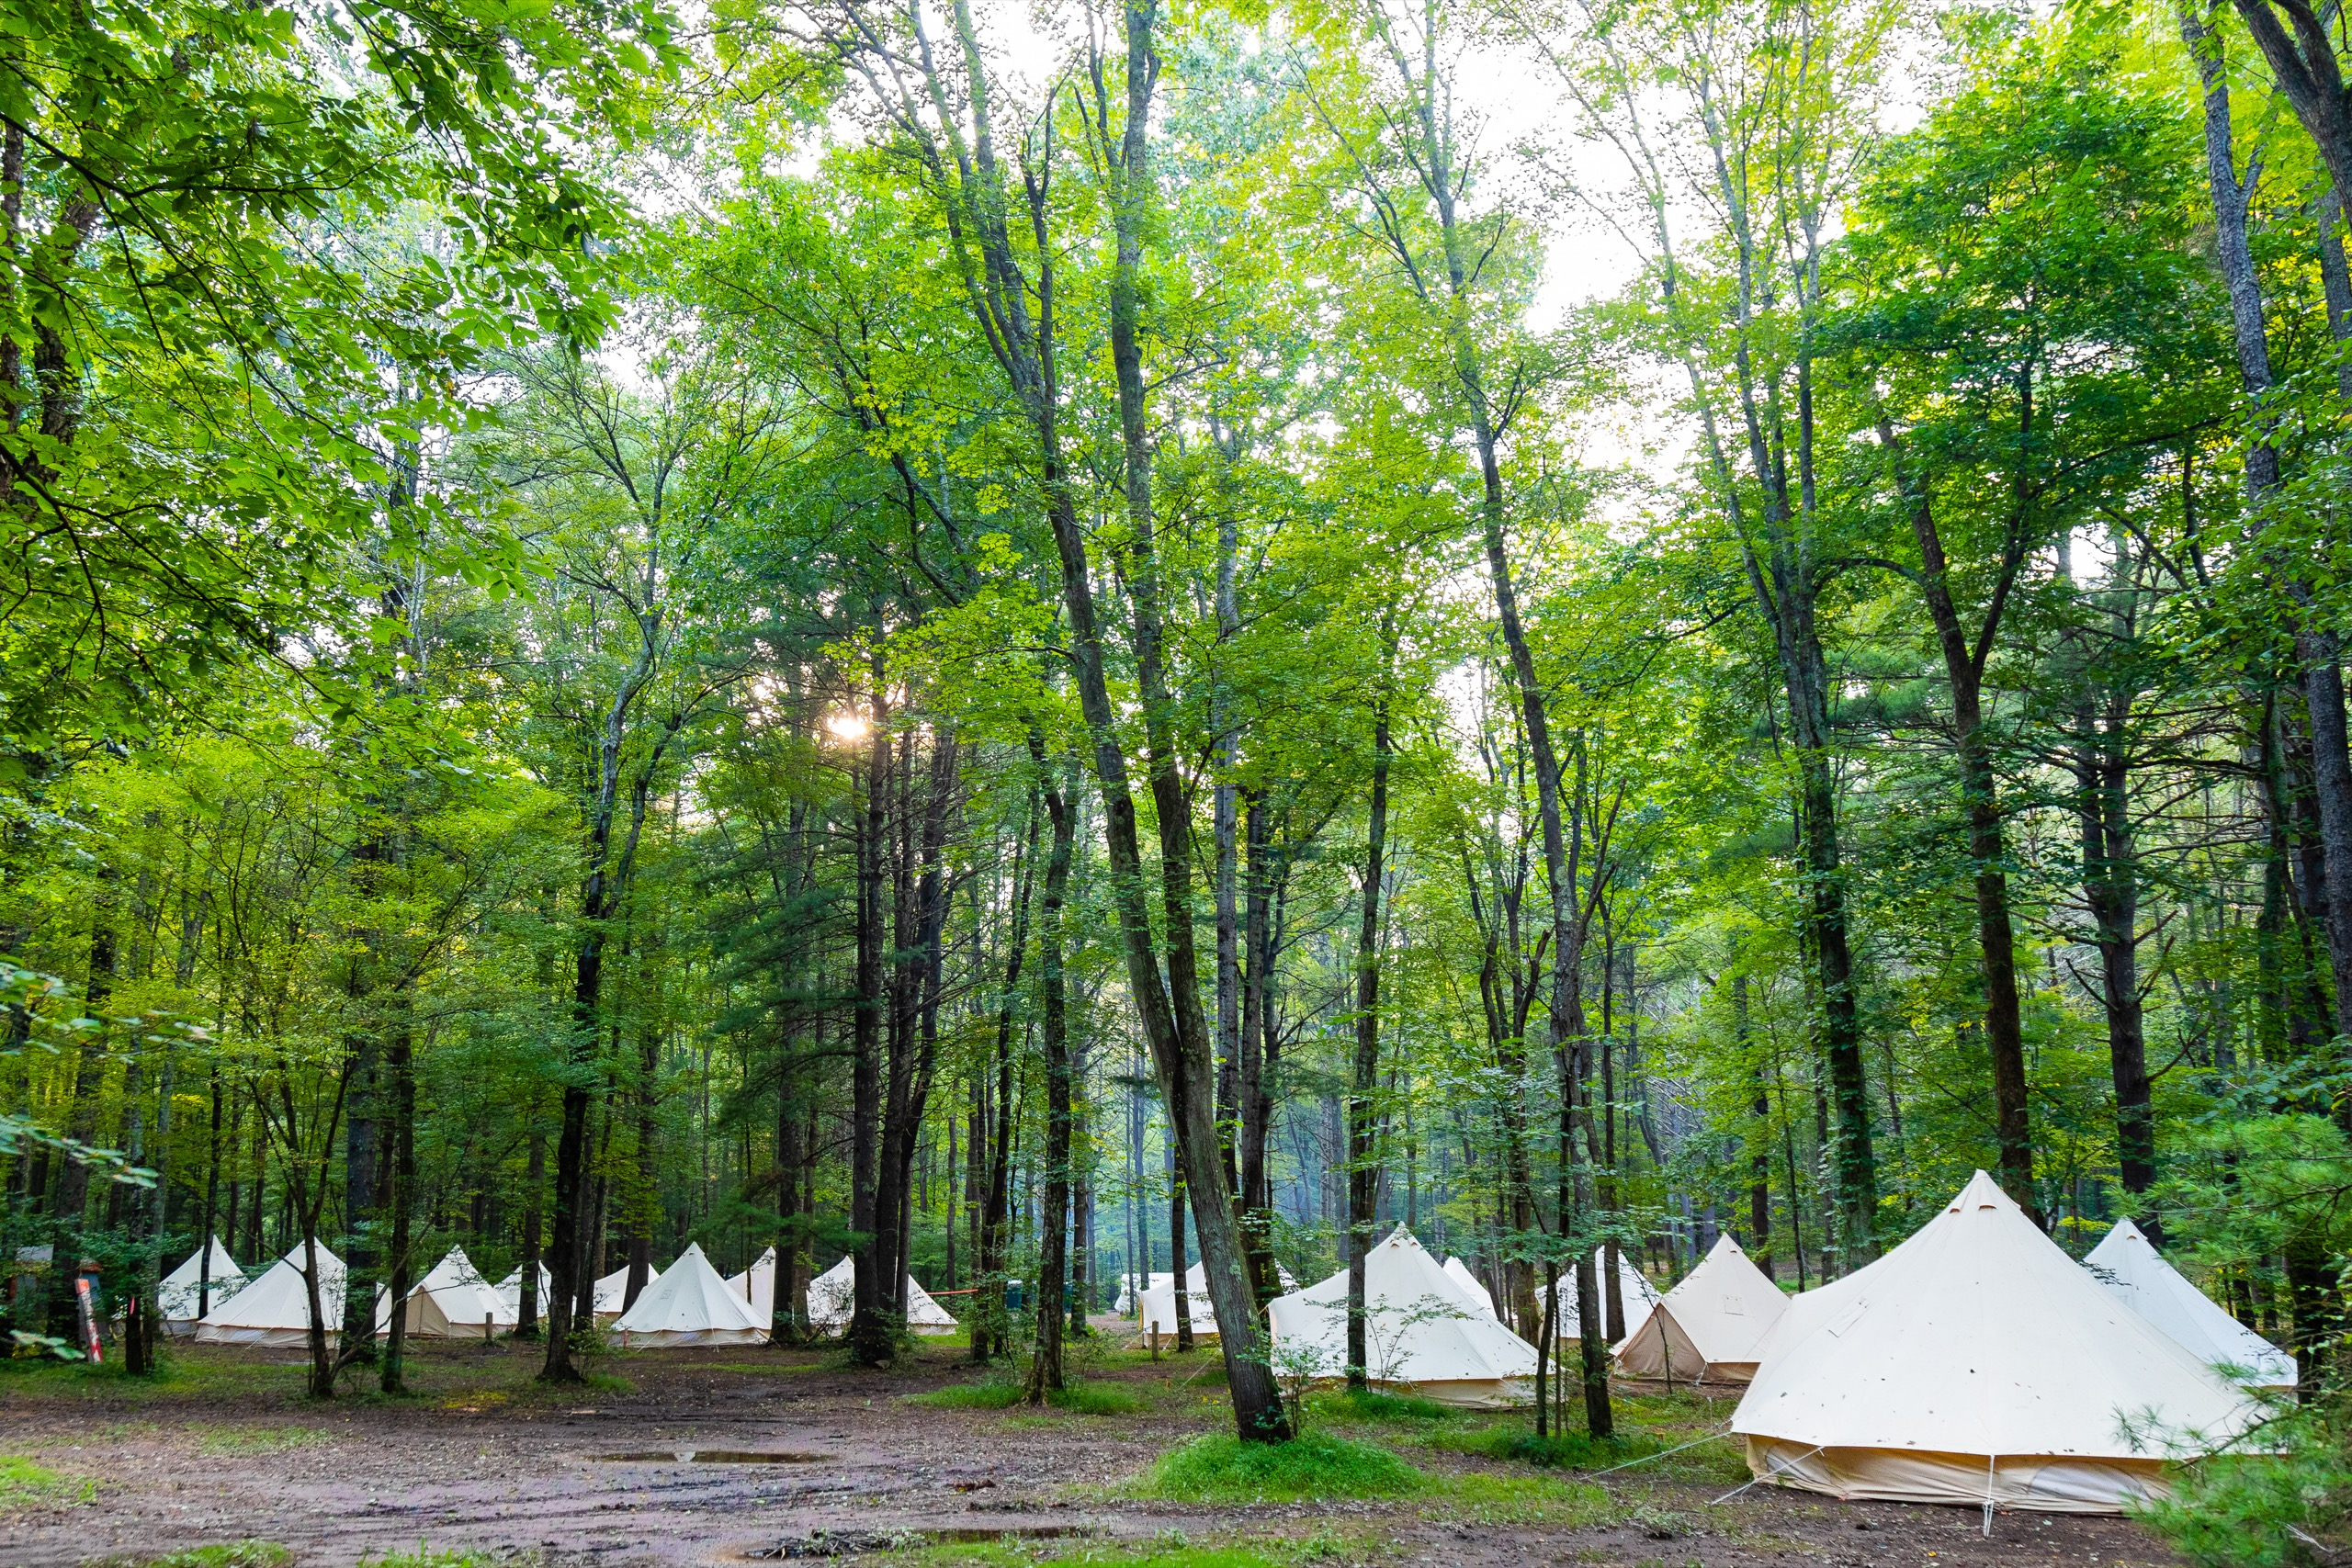 Glamping Tents at Campout